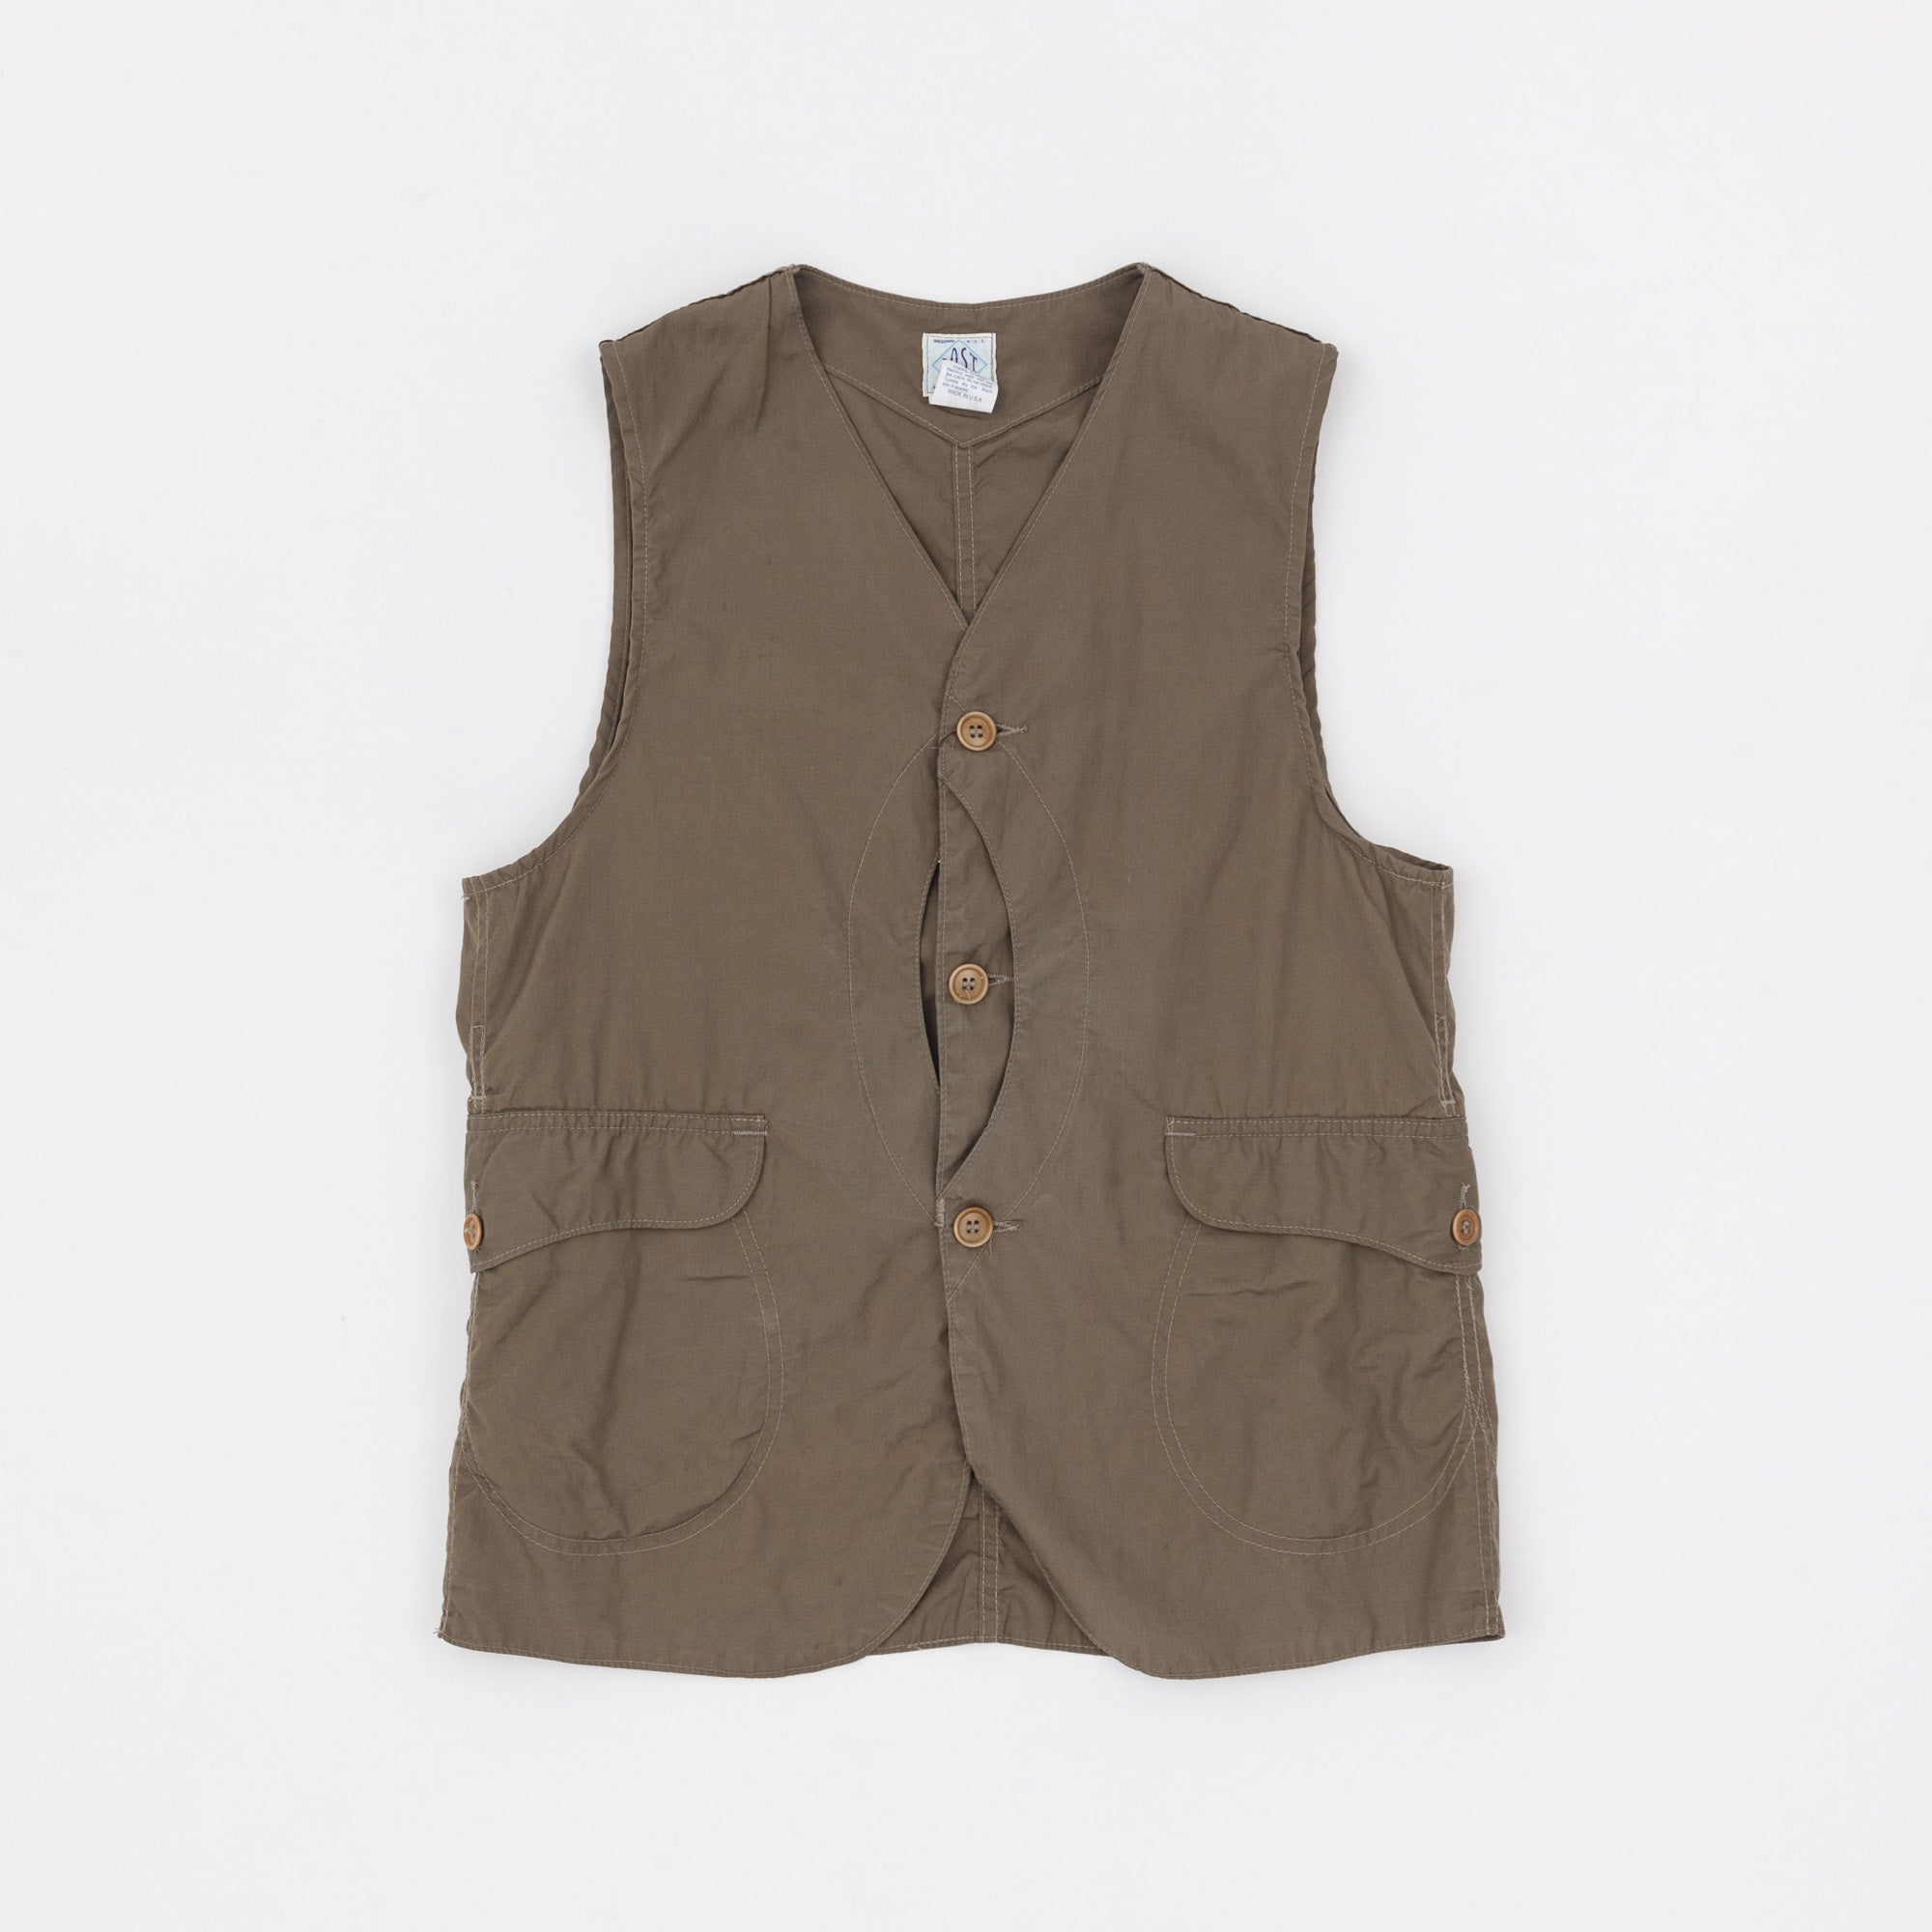 Post Overalls Royal Traveller Vest